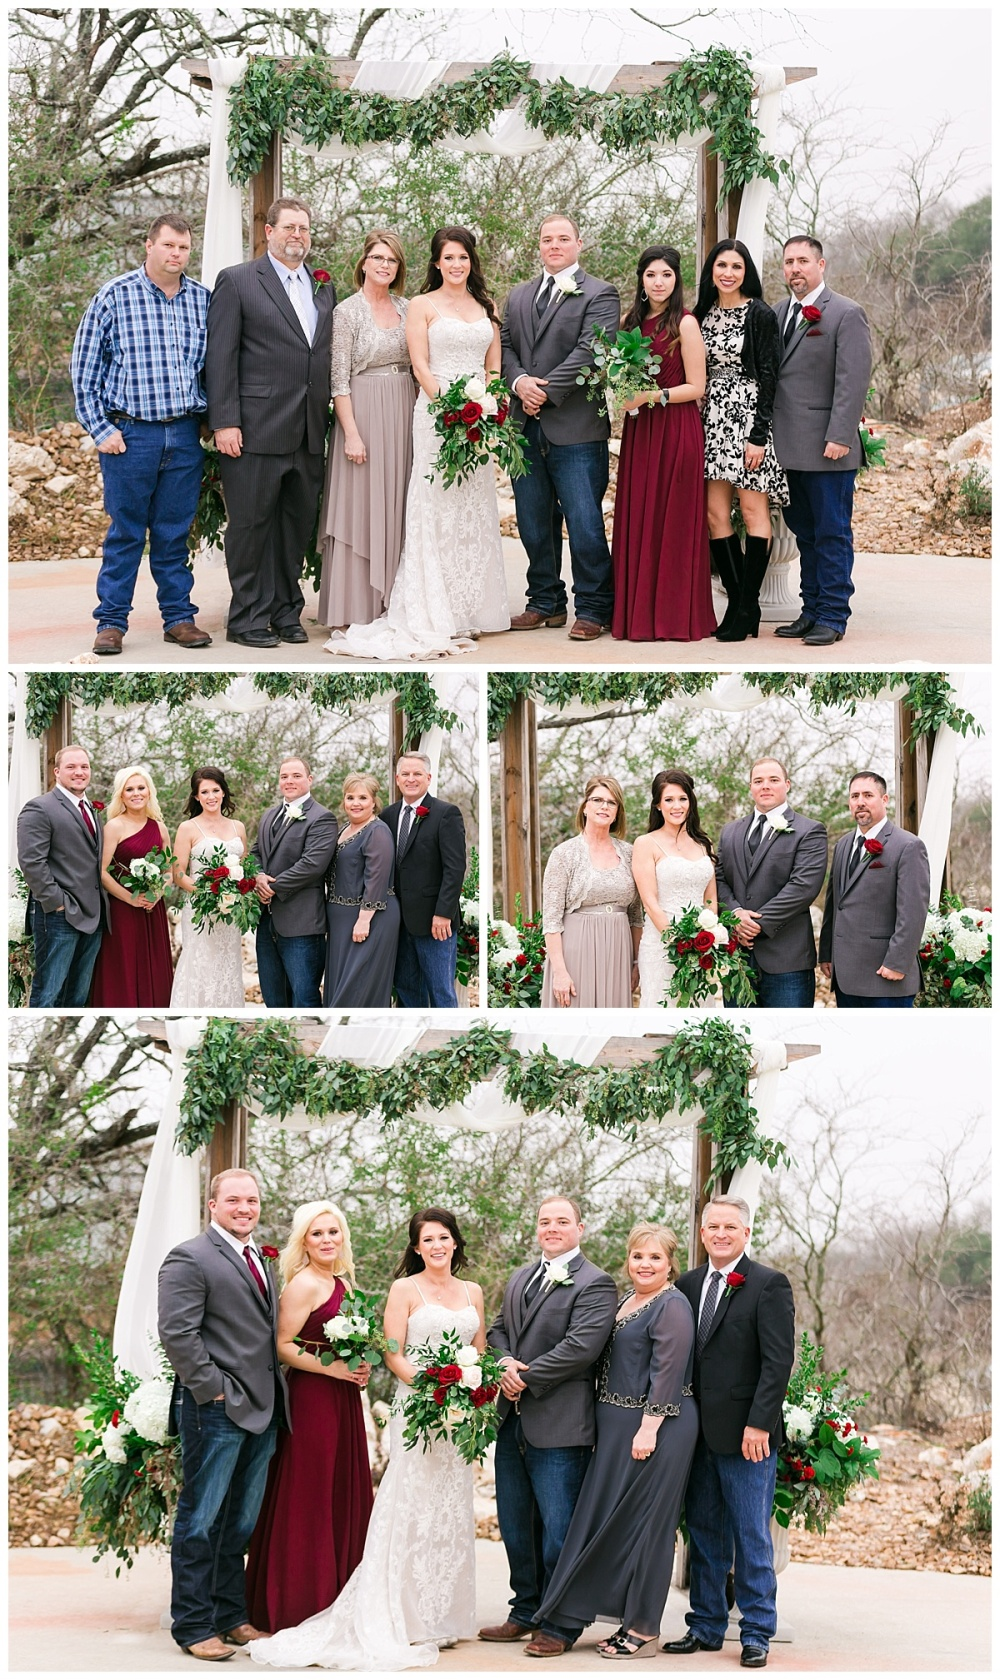 Carly-Barton-Photography-Geronimo-Oaks-Wedding-Venue-Texas-Hill-Country-Ronnie-Sarah_0110.jpg